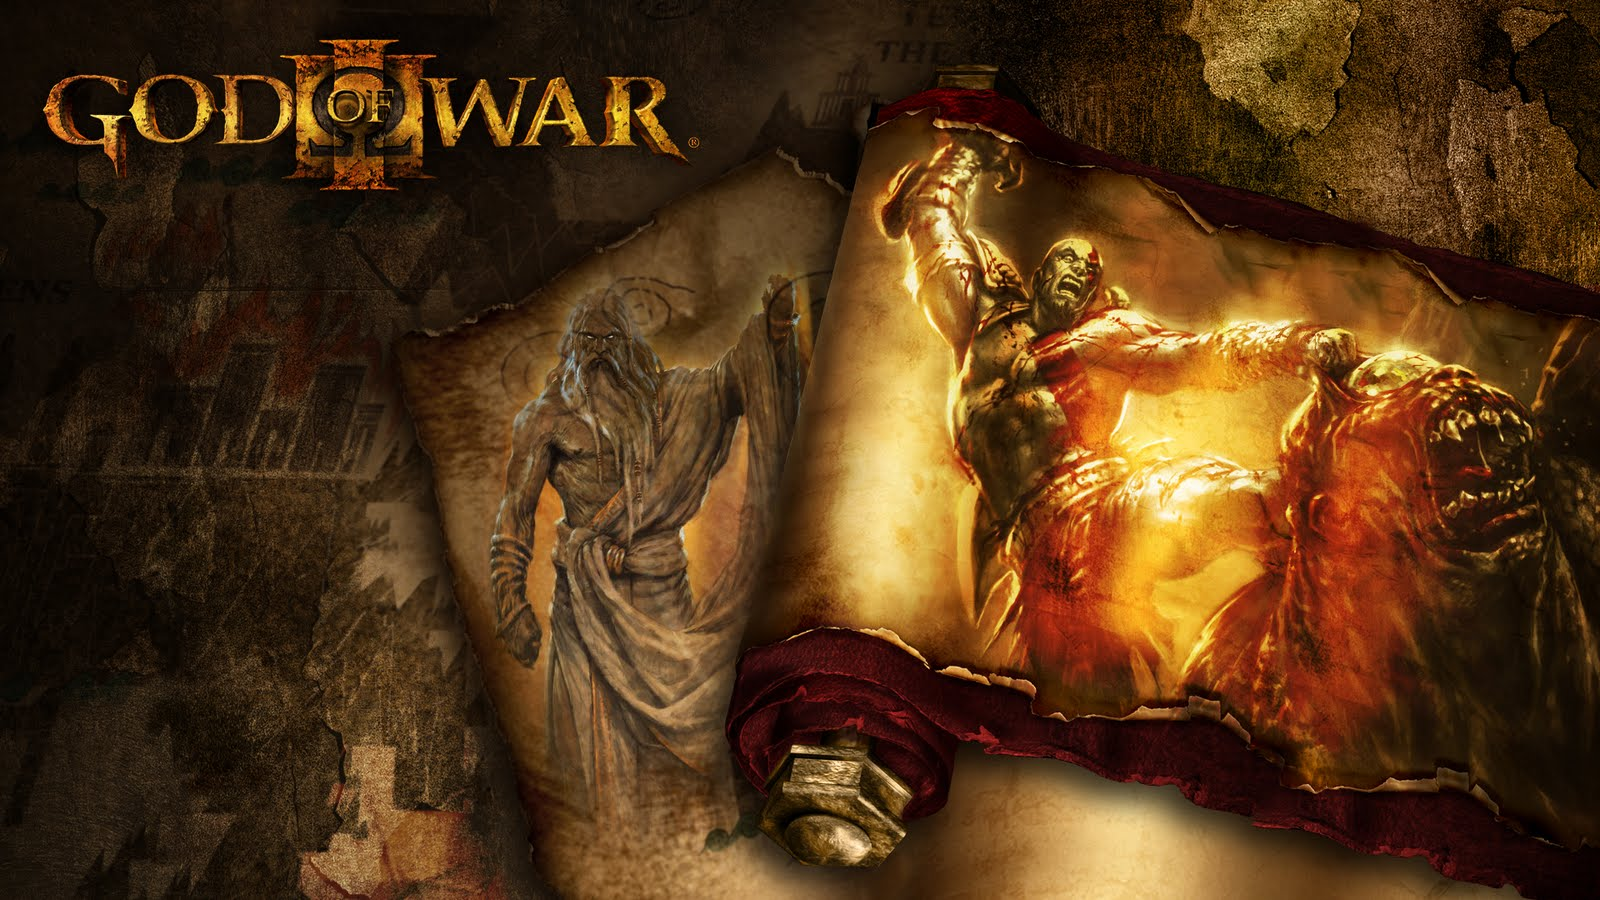 Wallpapers de God of War 3 HD DragonXoft 1600x900